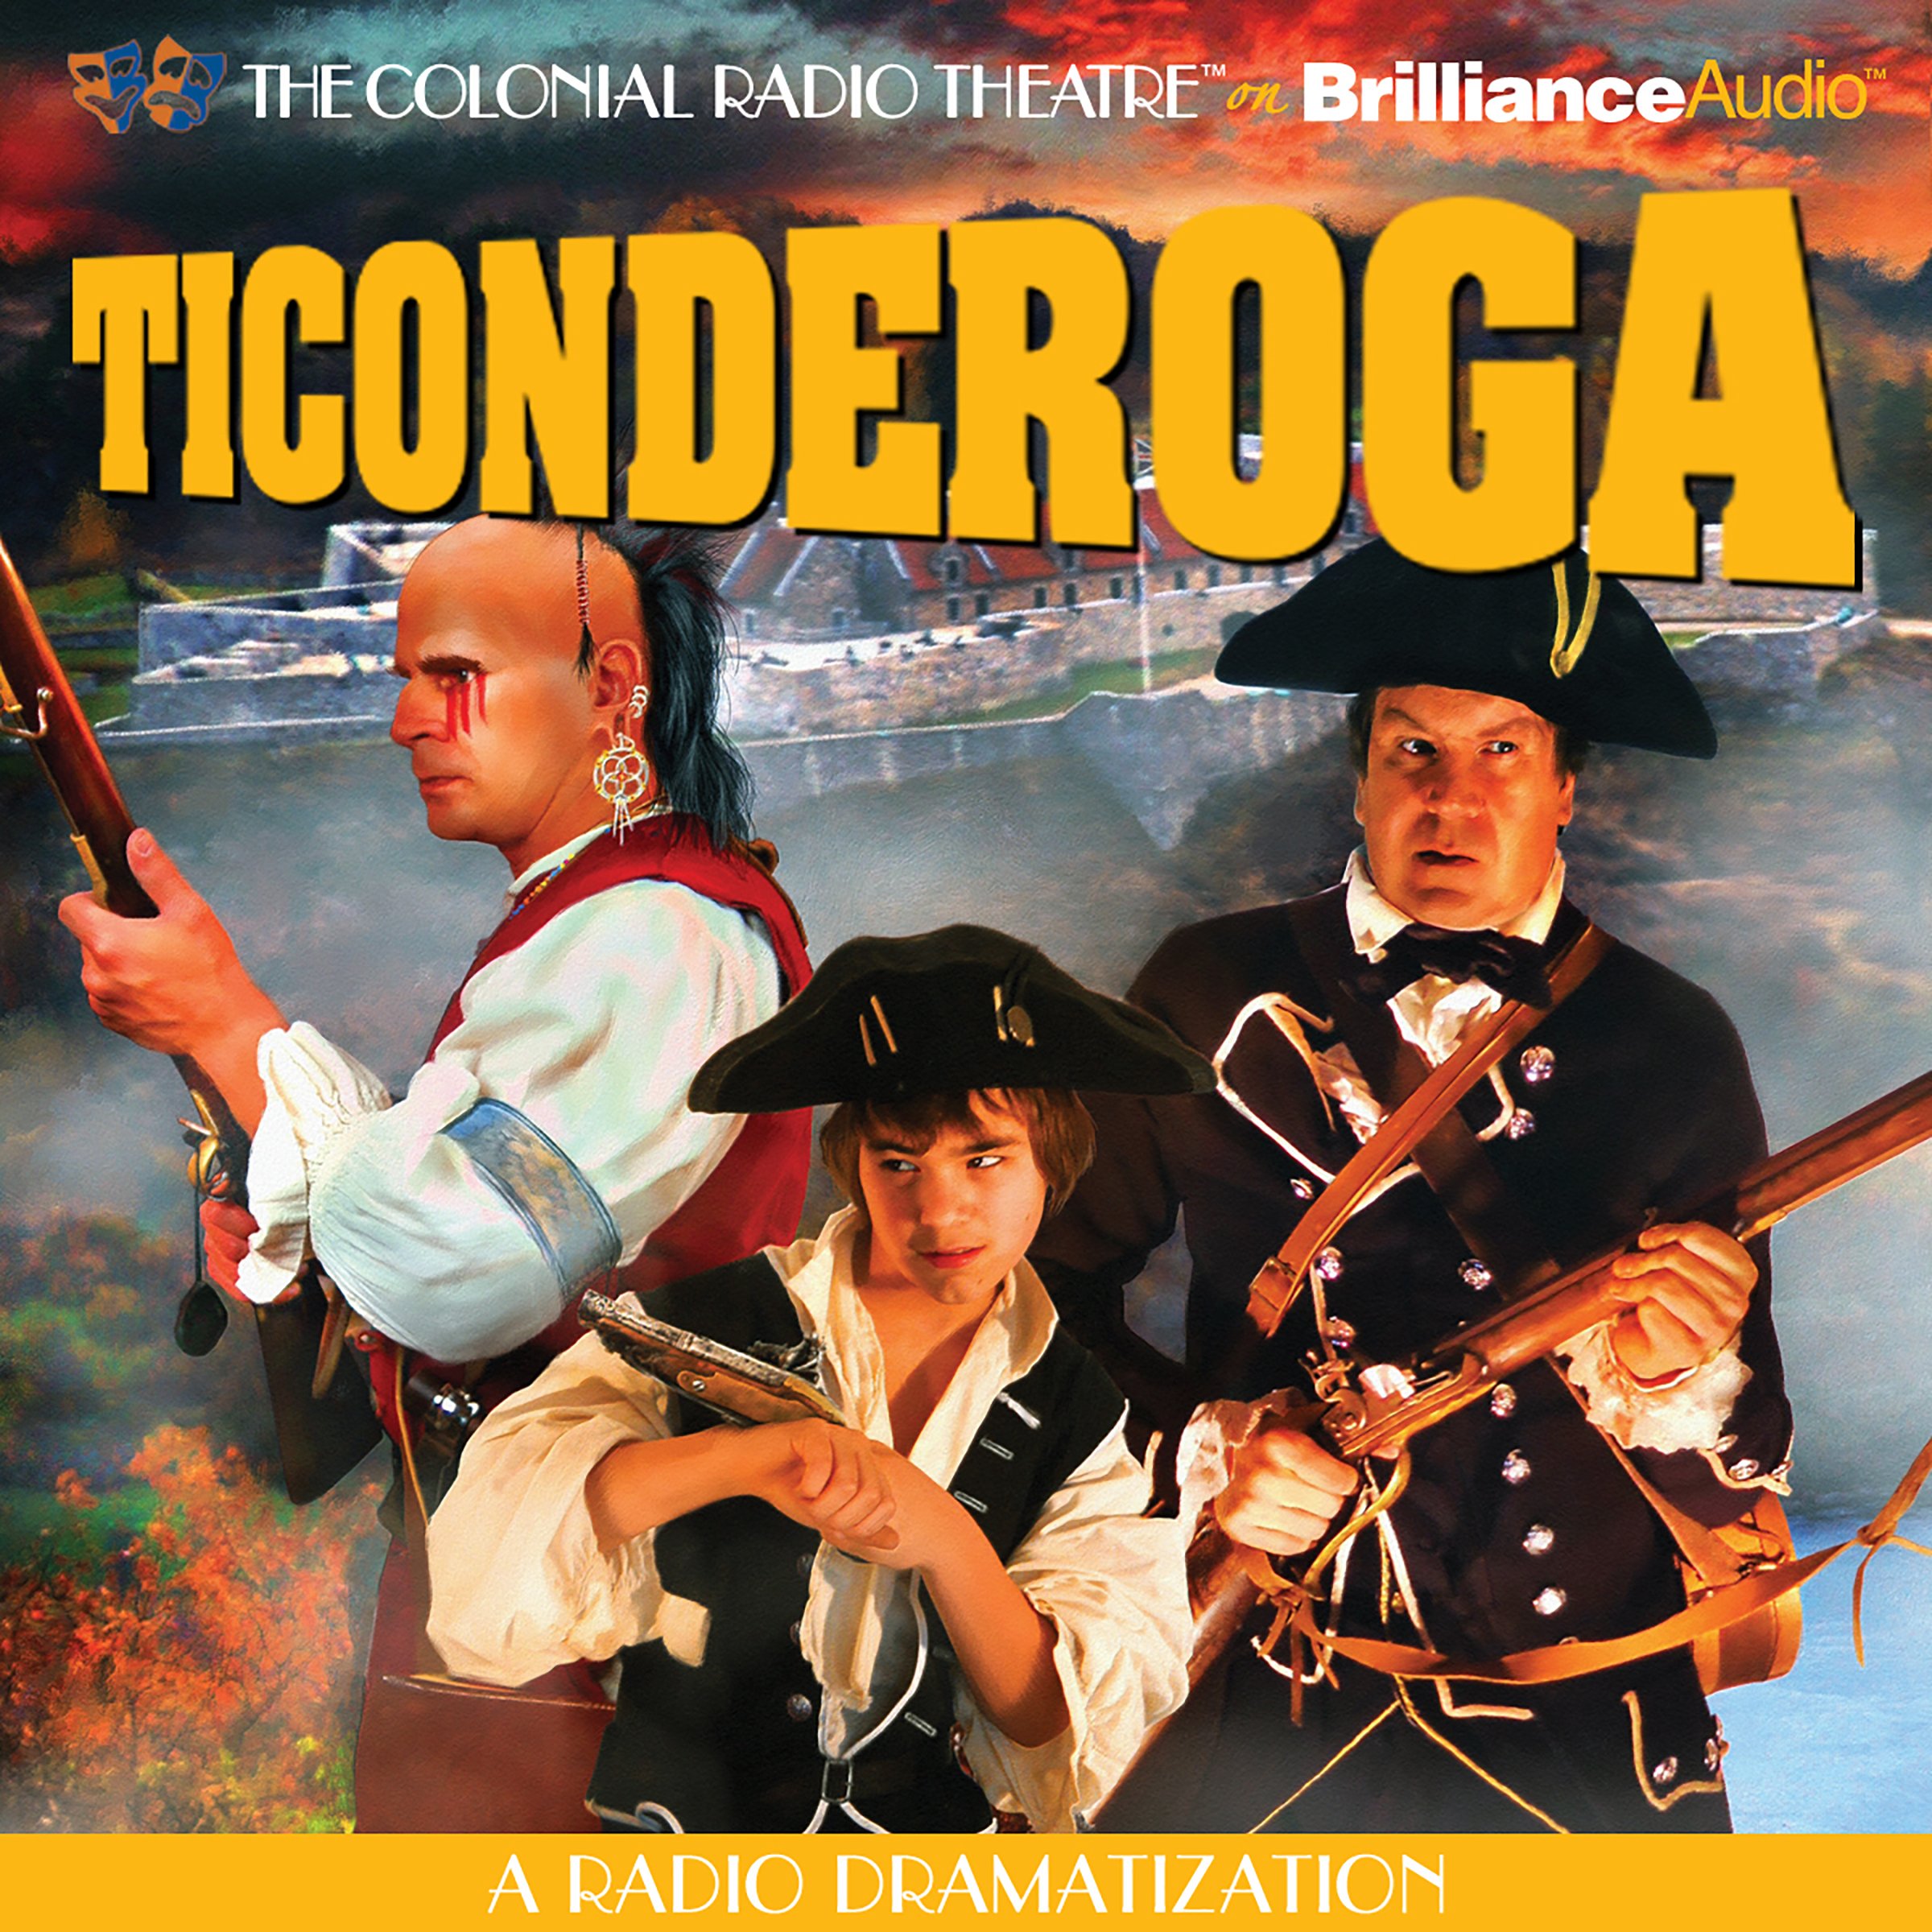 Printable Ticonderoga: A Radio Dramatization Audiobook Cover Art